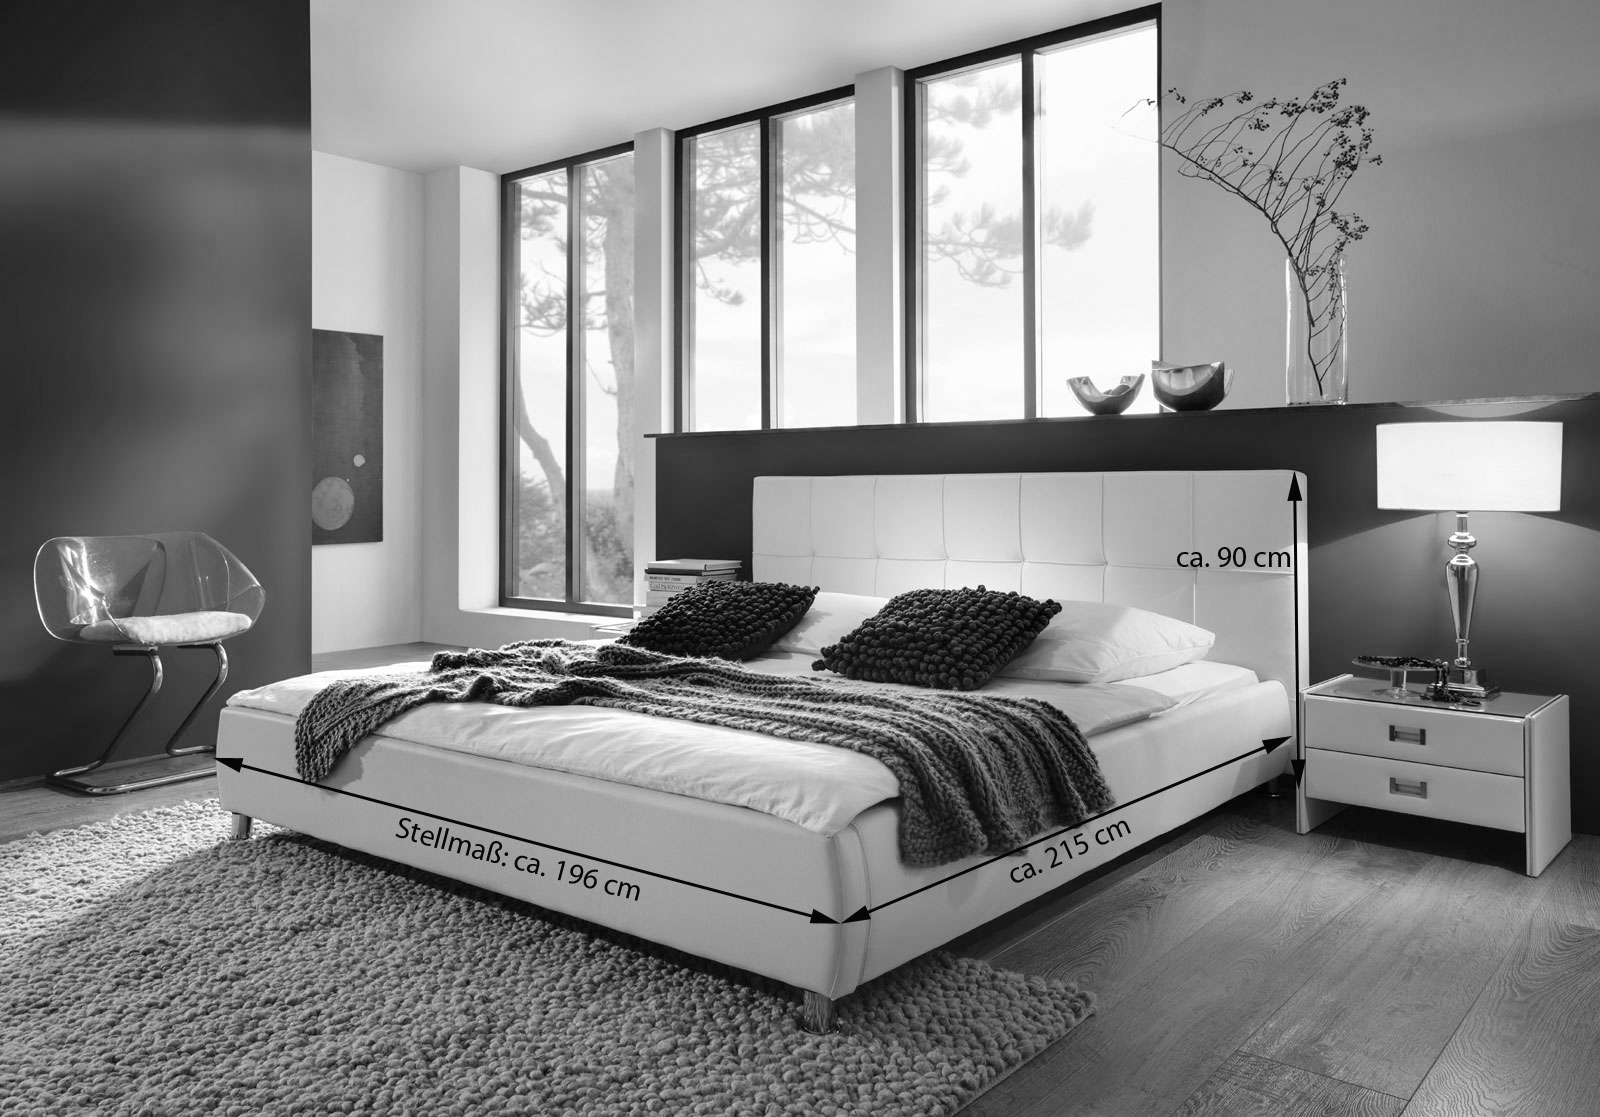 sam polsterbett 180x200 cm wei bettgestell g nstig zarah demn chst. Black Bedroom Furniture Sets. Home Design Ideas